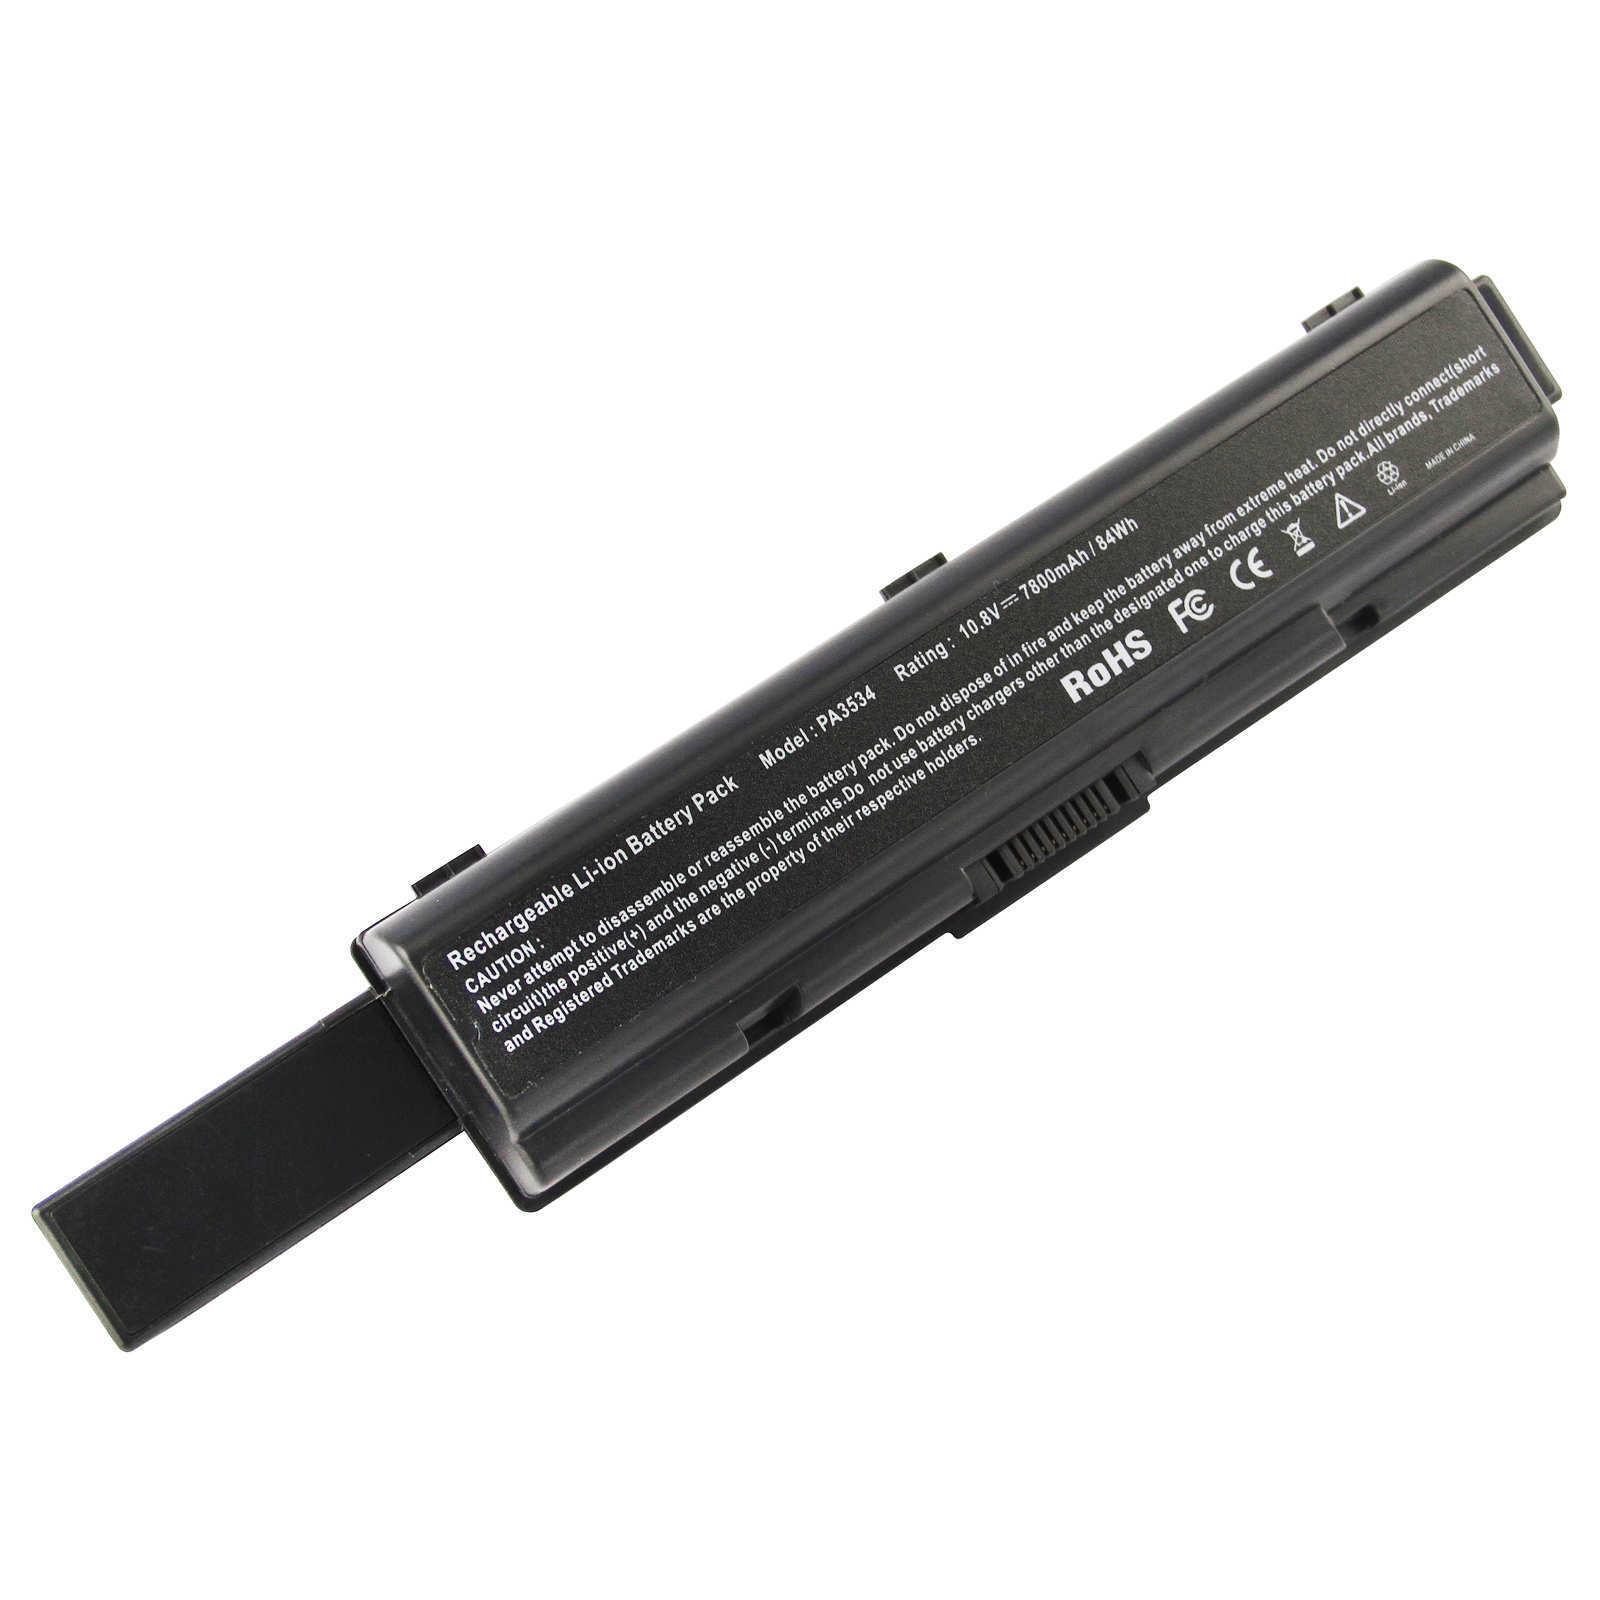 Replacement Toshiba Satellite A205-S4707 Battery